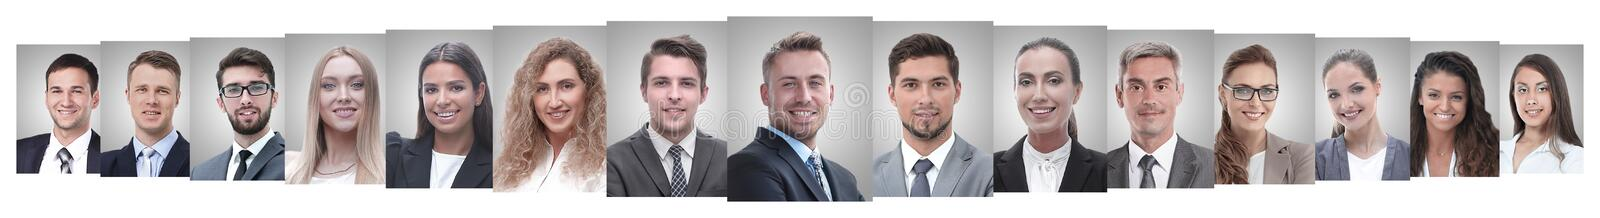 Panoramic collage of portraits of successful employees royalty free stock images